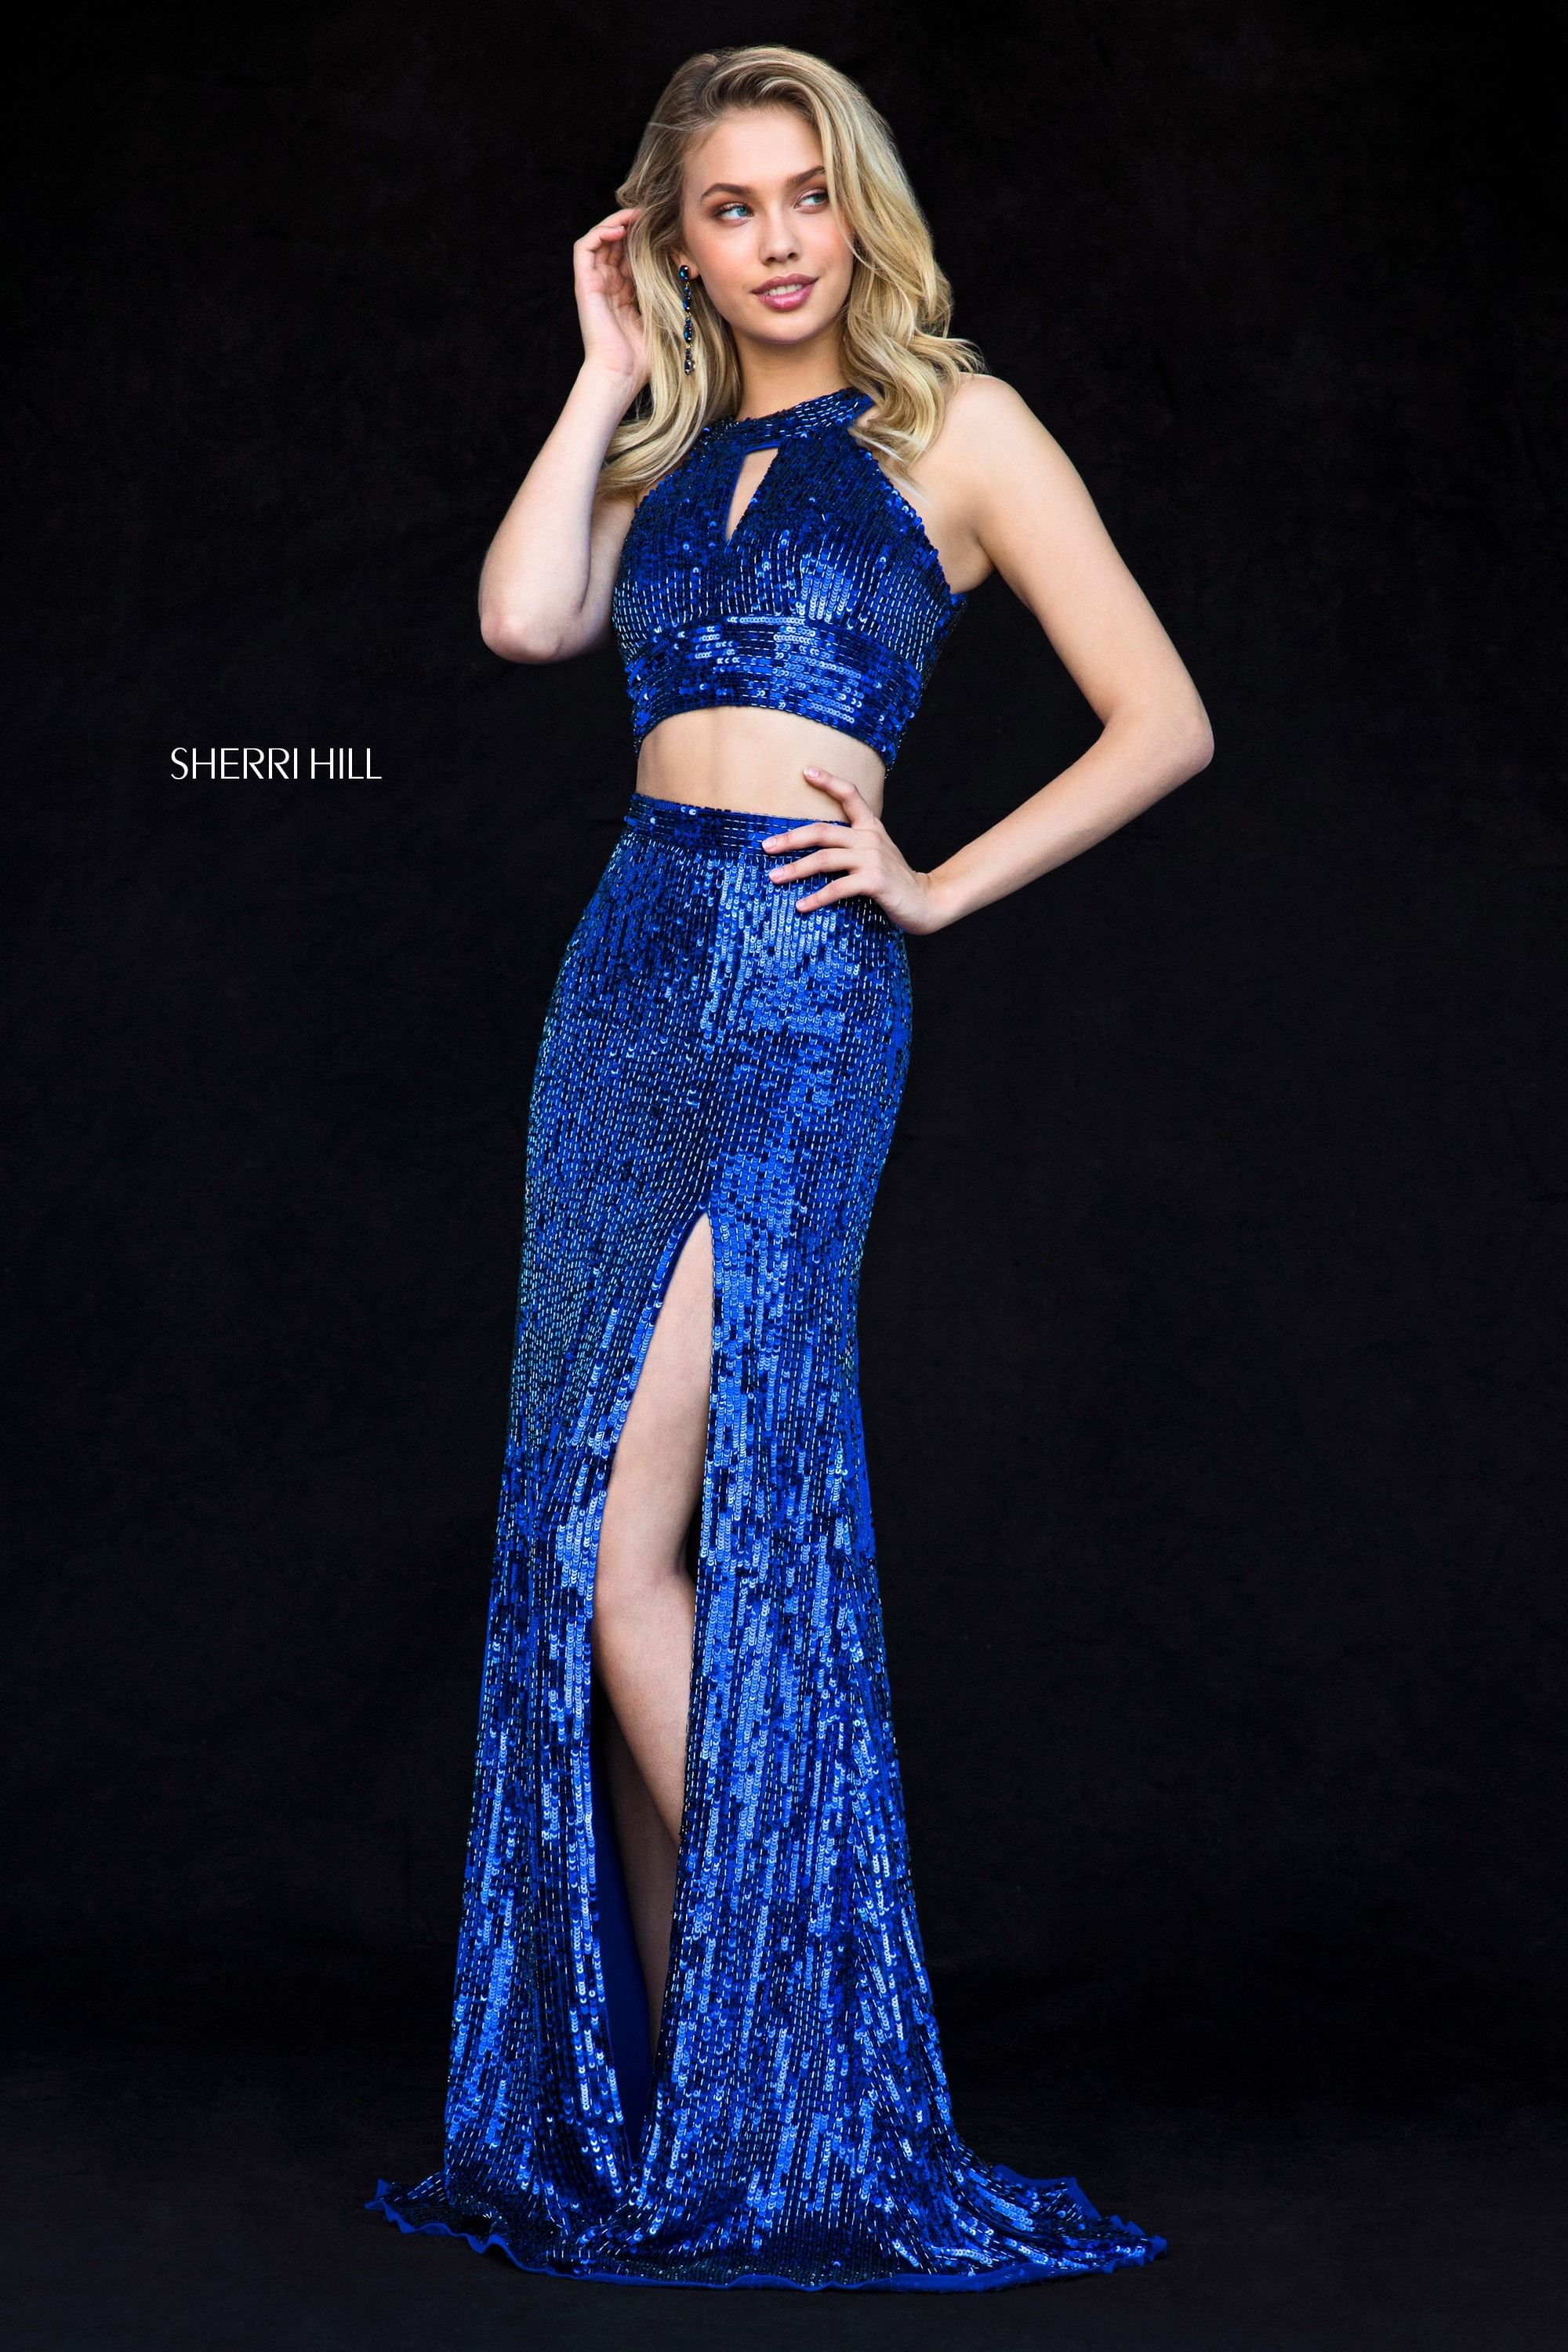 fad2e59c This Sherri Hill 51756 royal blue prom gown features a jewel neck crop top  with a front keyhole and cutout back, paired with a high slit column-style  skirt.